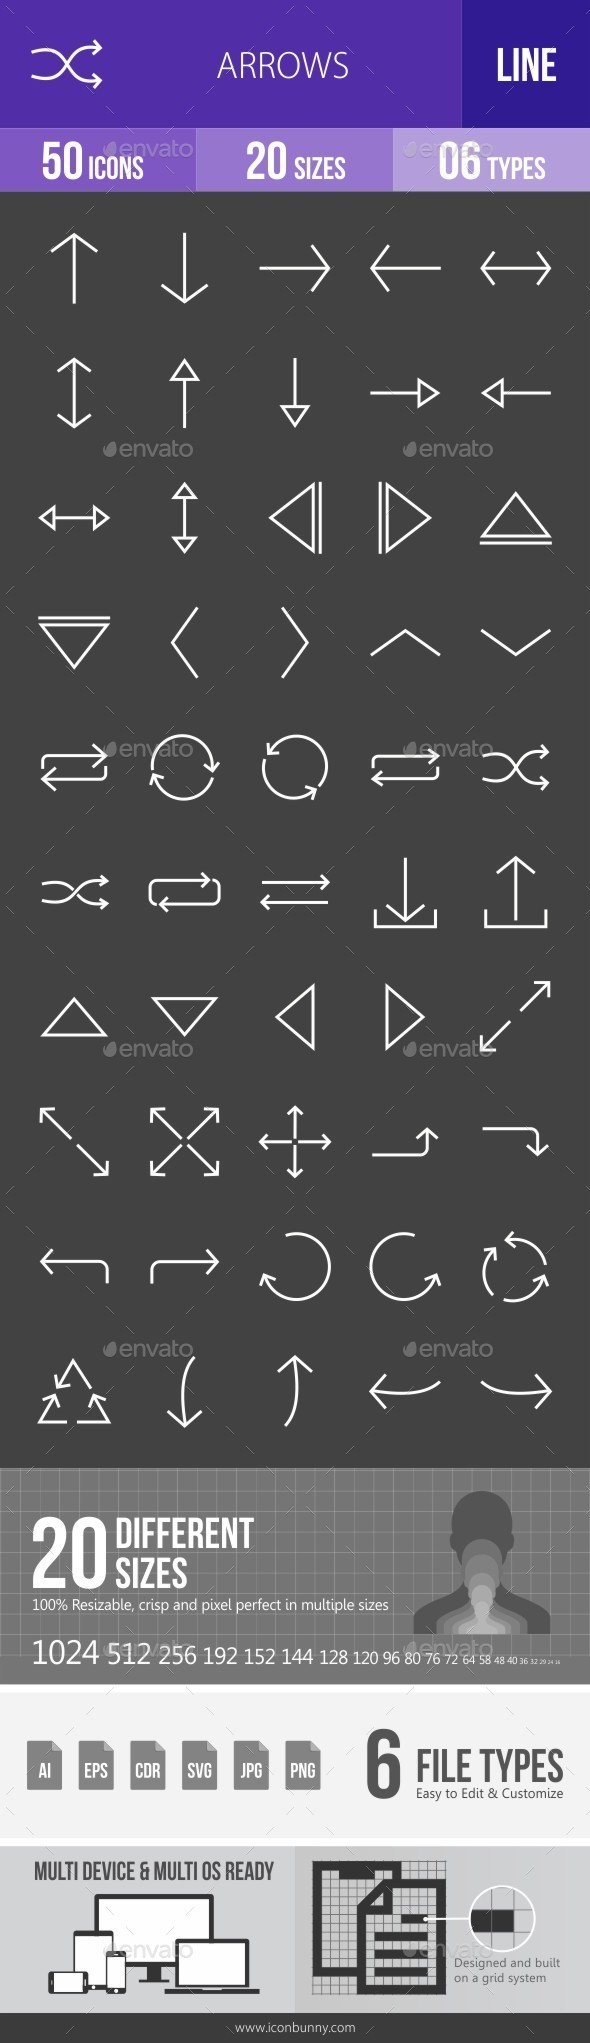 Arrows Line Inverted Icons - Icons